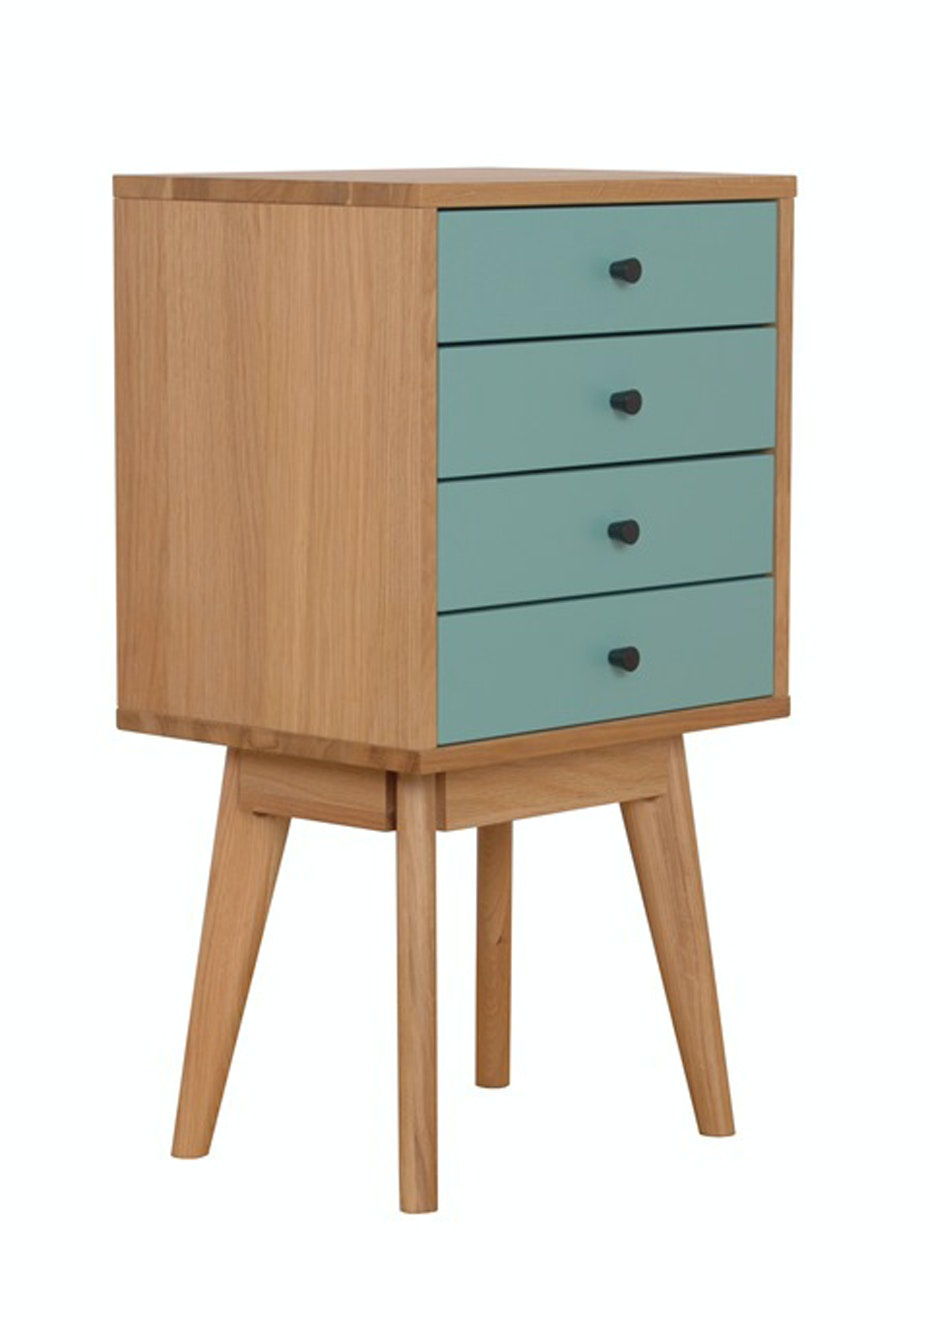 Furniture By Design - Radius 4 Tower- Turquoise and Oak